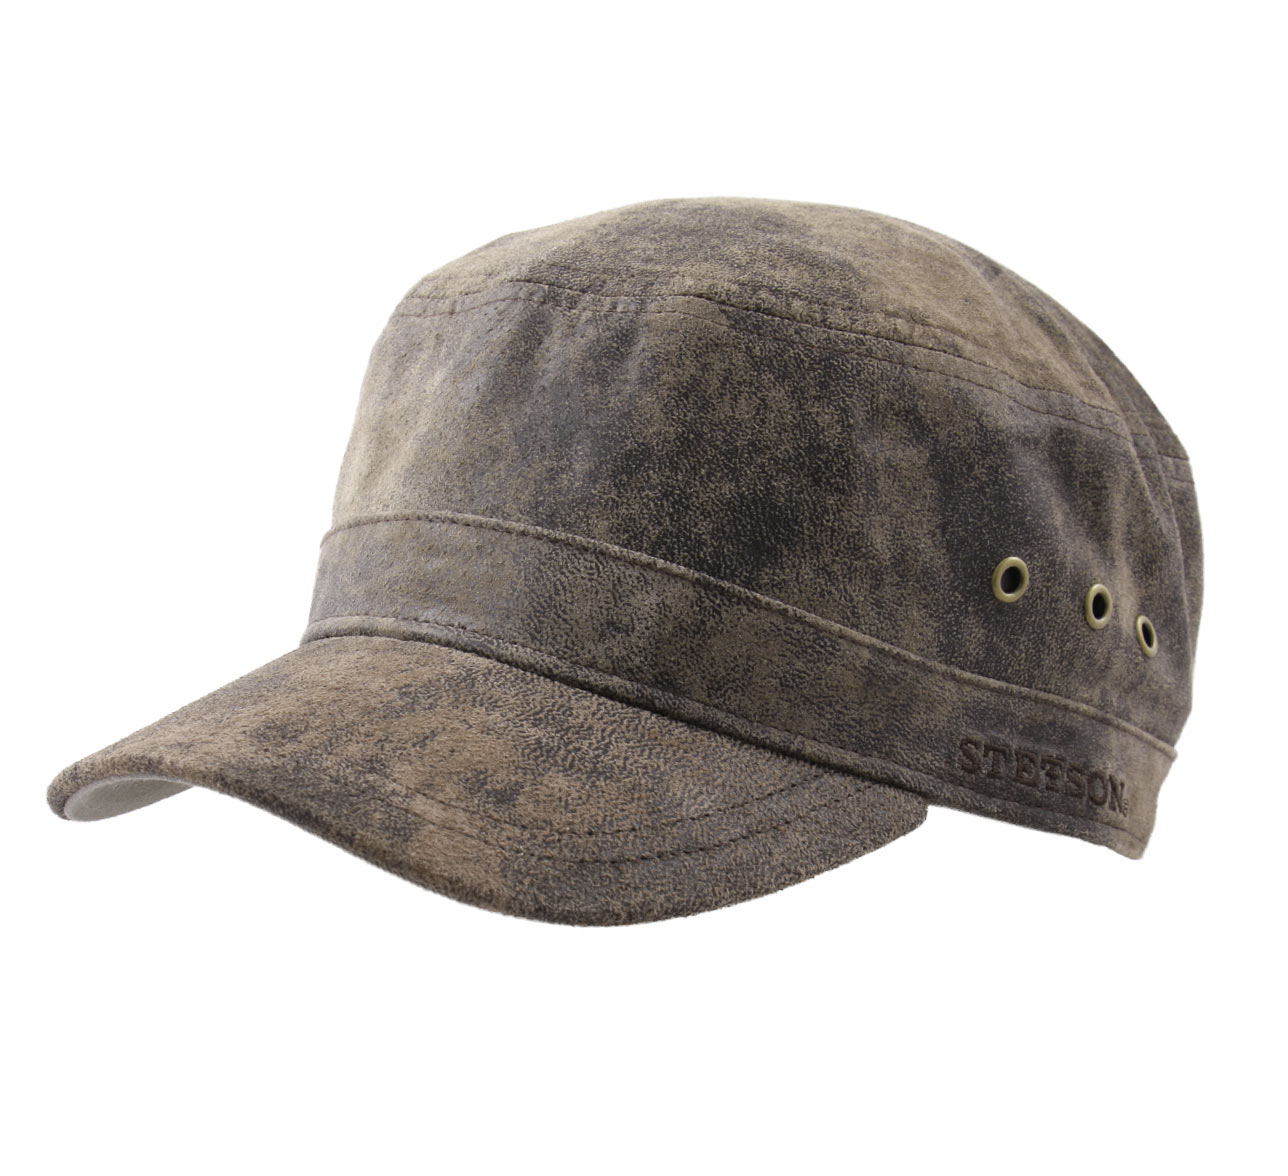 Casquette militaire cuir Raymore Pig Skin